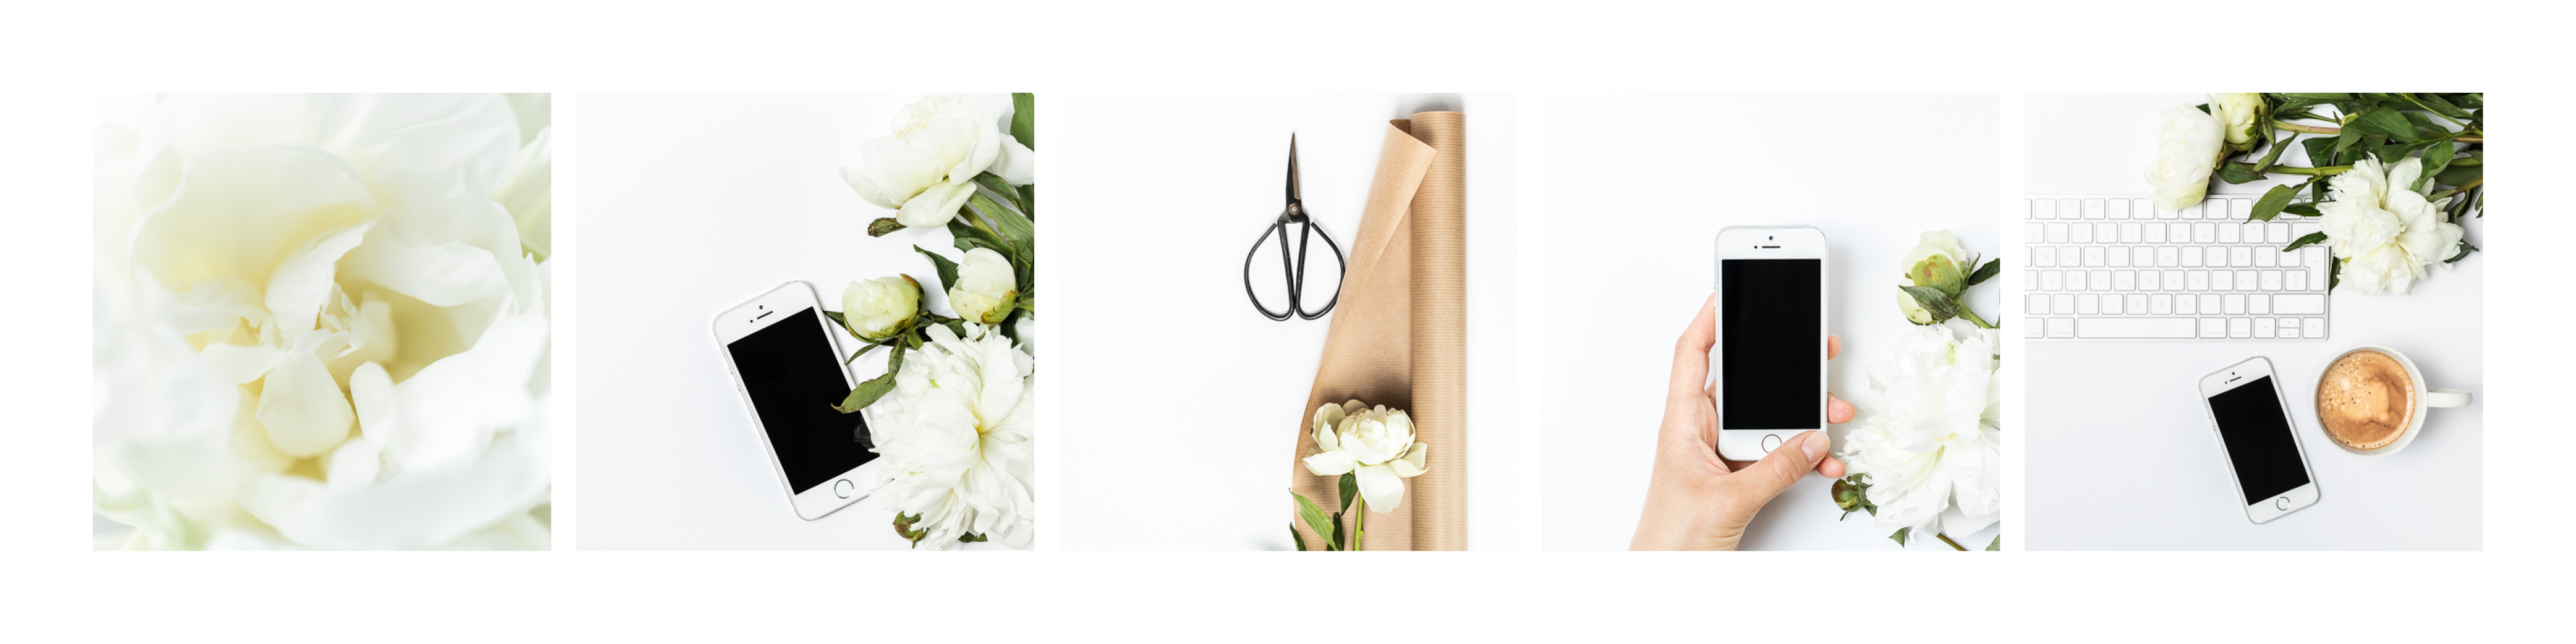 Overview image for a styled stock bundle featuring white peonies and an iPhone SE